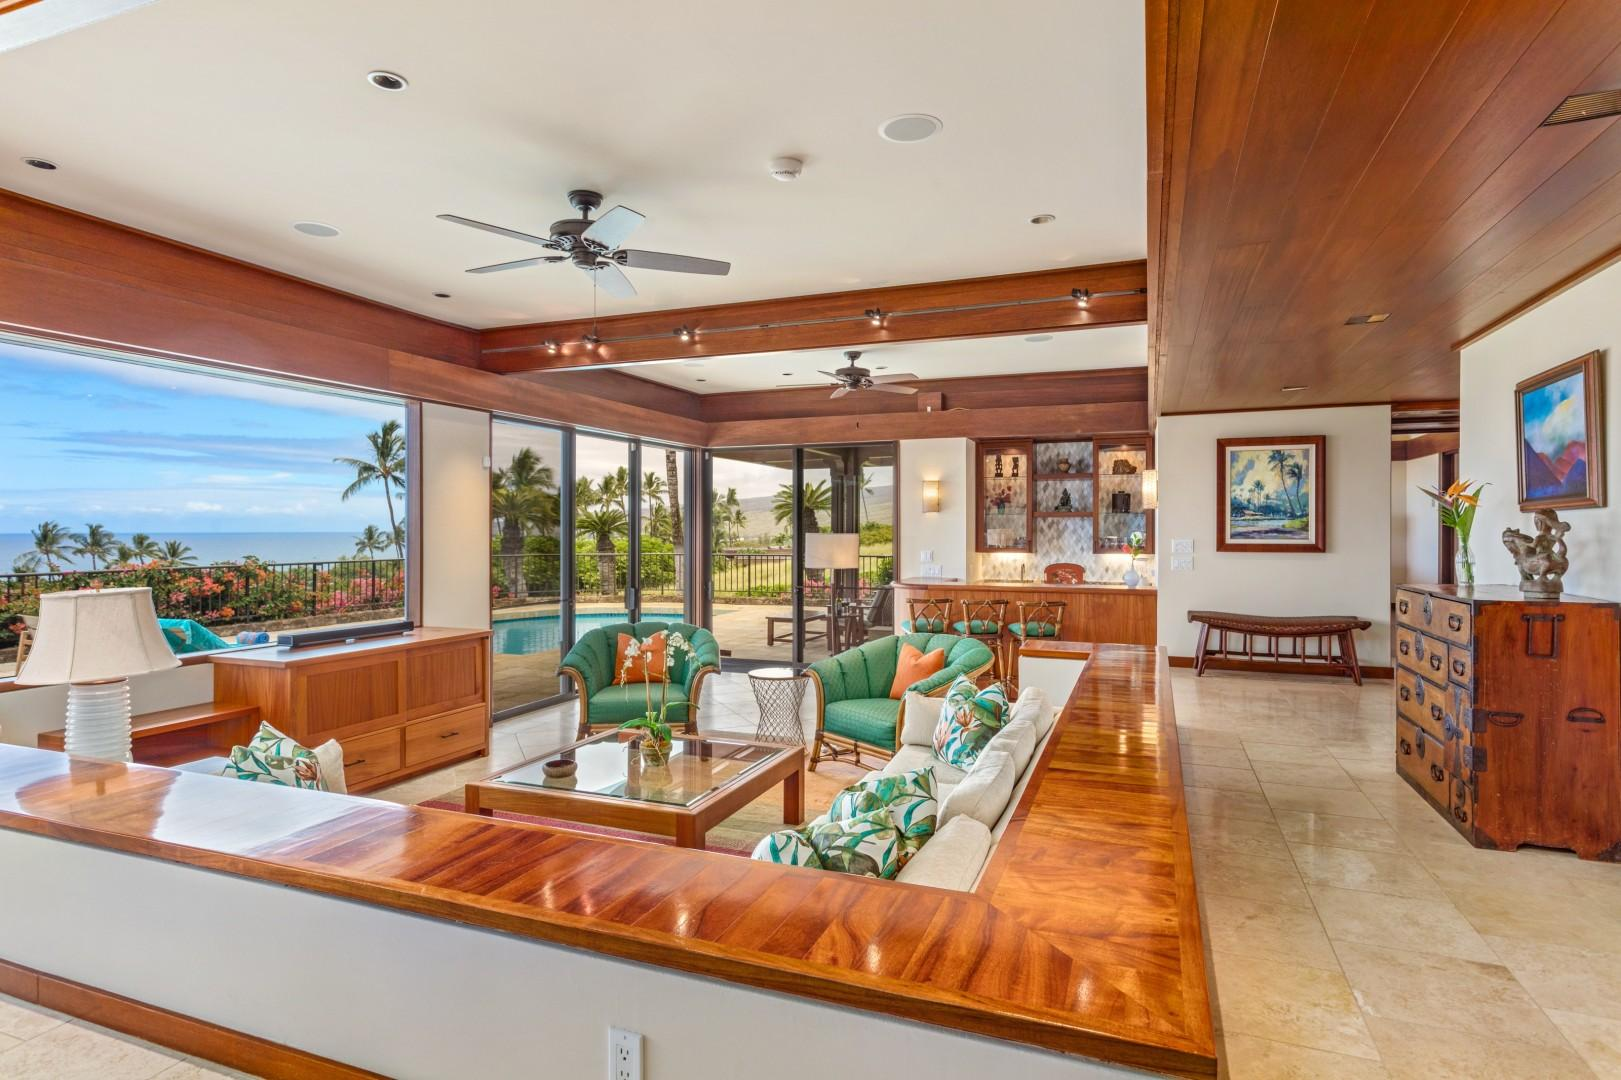 Elegant Koa Woodwork, High Valance Ceilings, Incredible Natural Light & Exquisite Views.